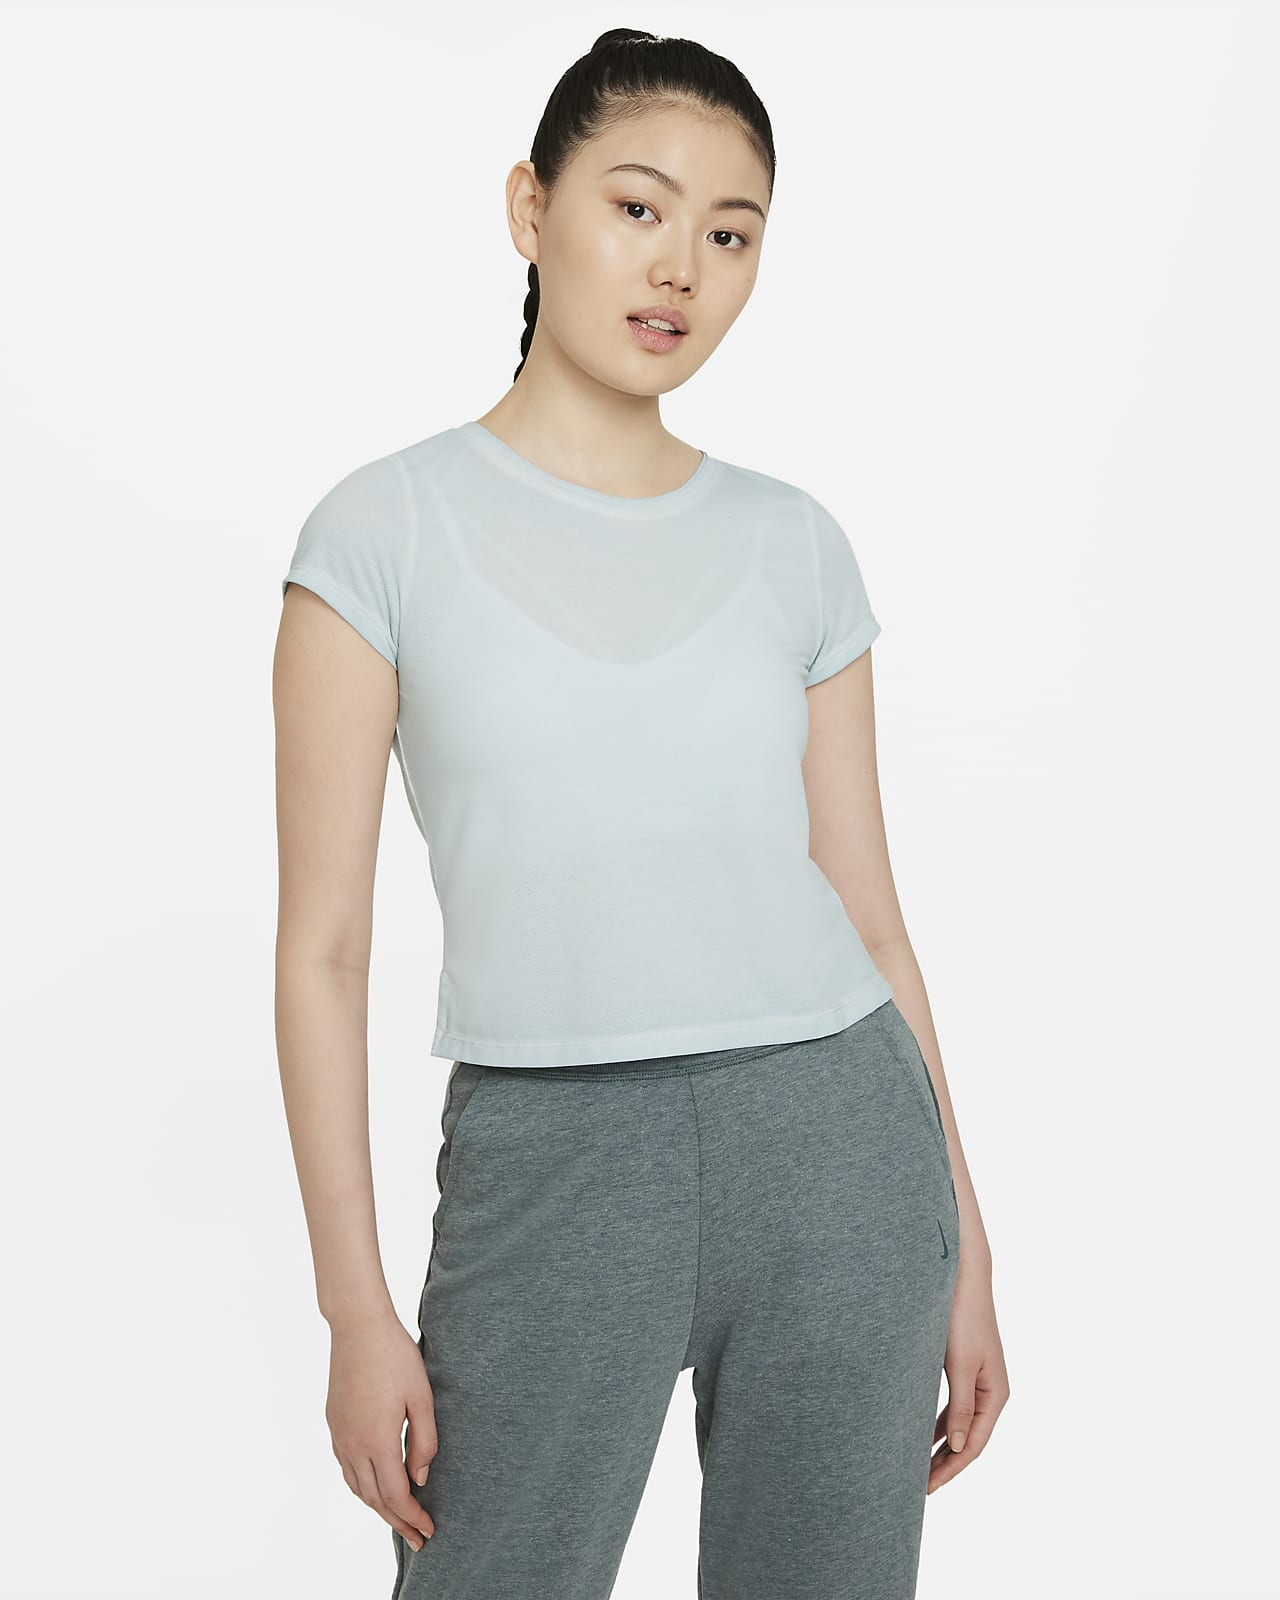 Nike Yoga Dri-FIT Women's Short-Sleeve Top